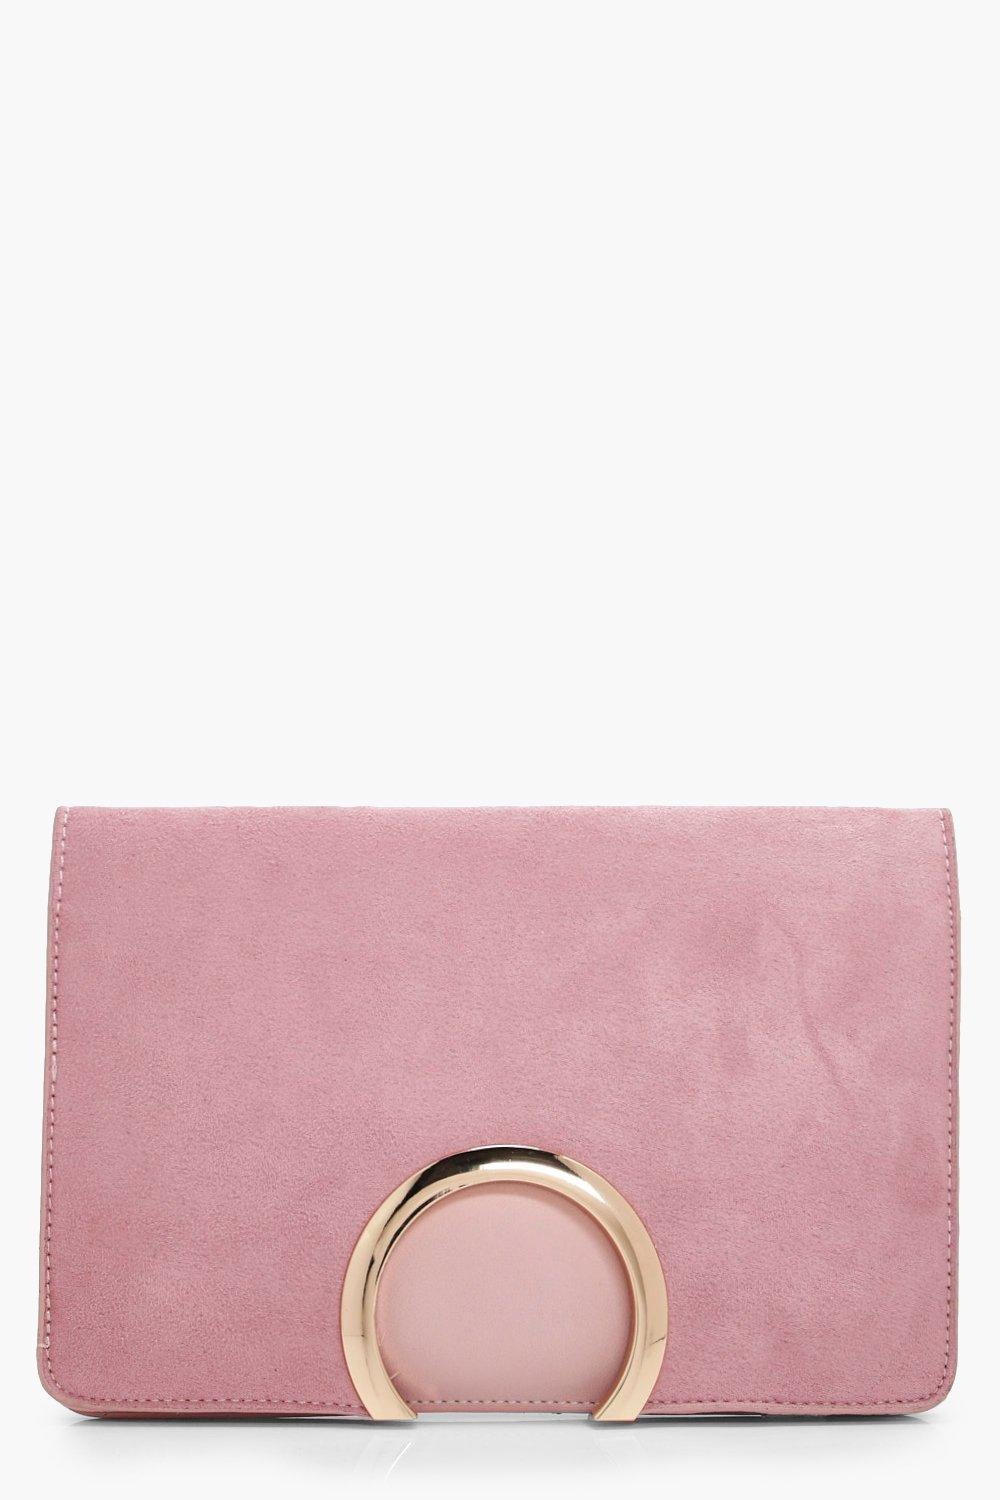 boohoo Womens Metal Circle Suedette & Pu Clutch Bag - Pink - One Size, Pink